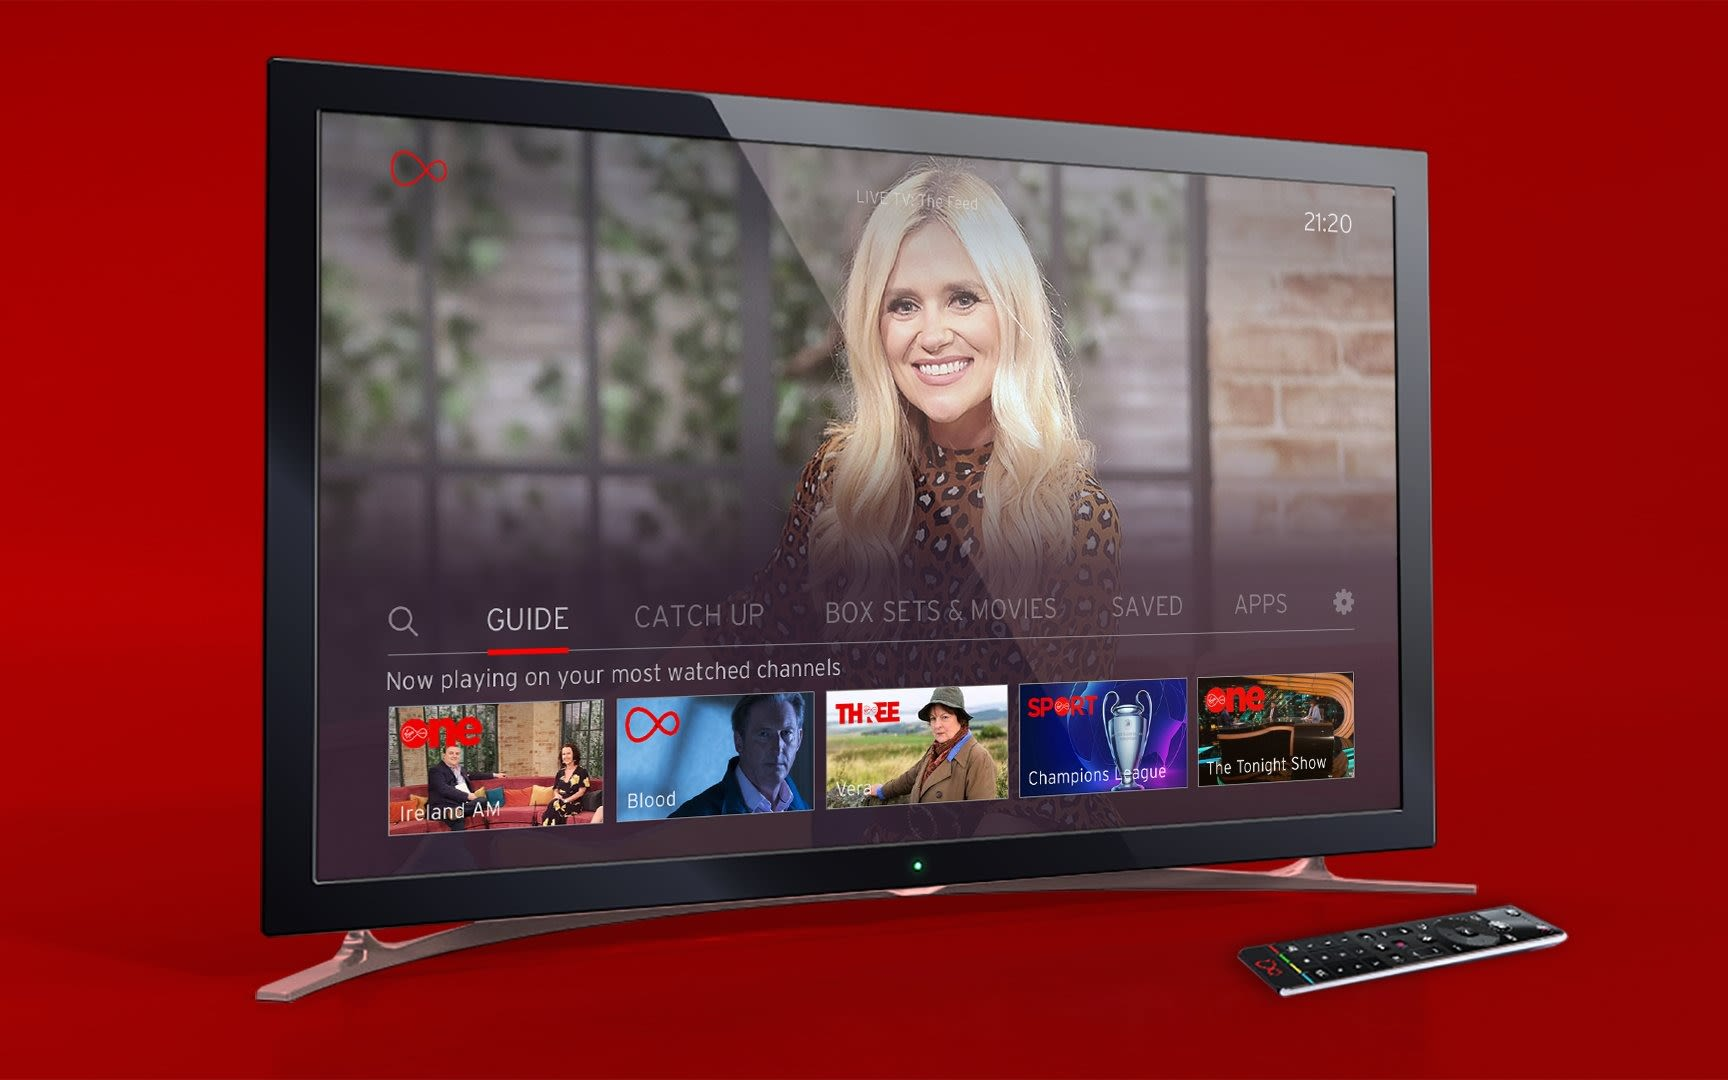 A television with a remote control next to it on a red background